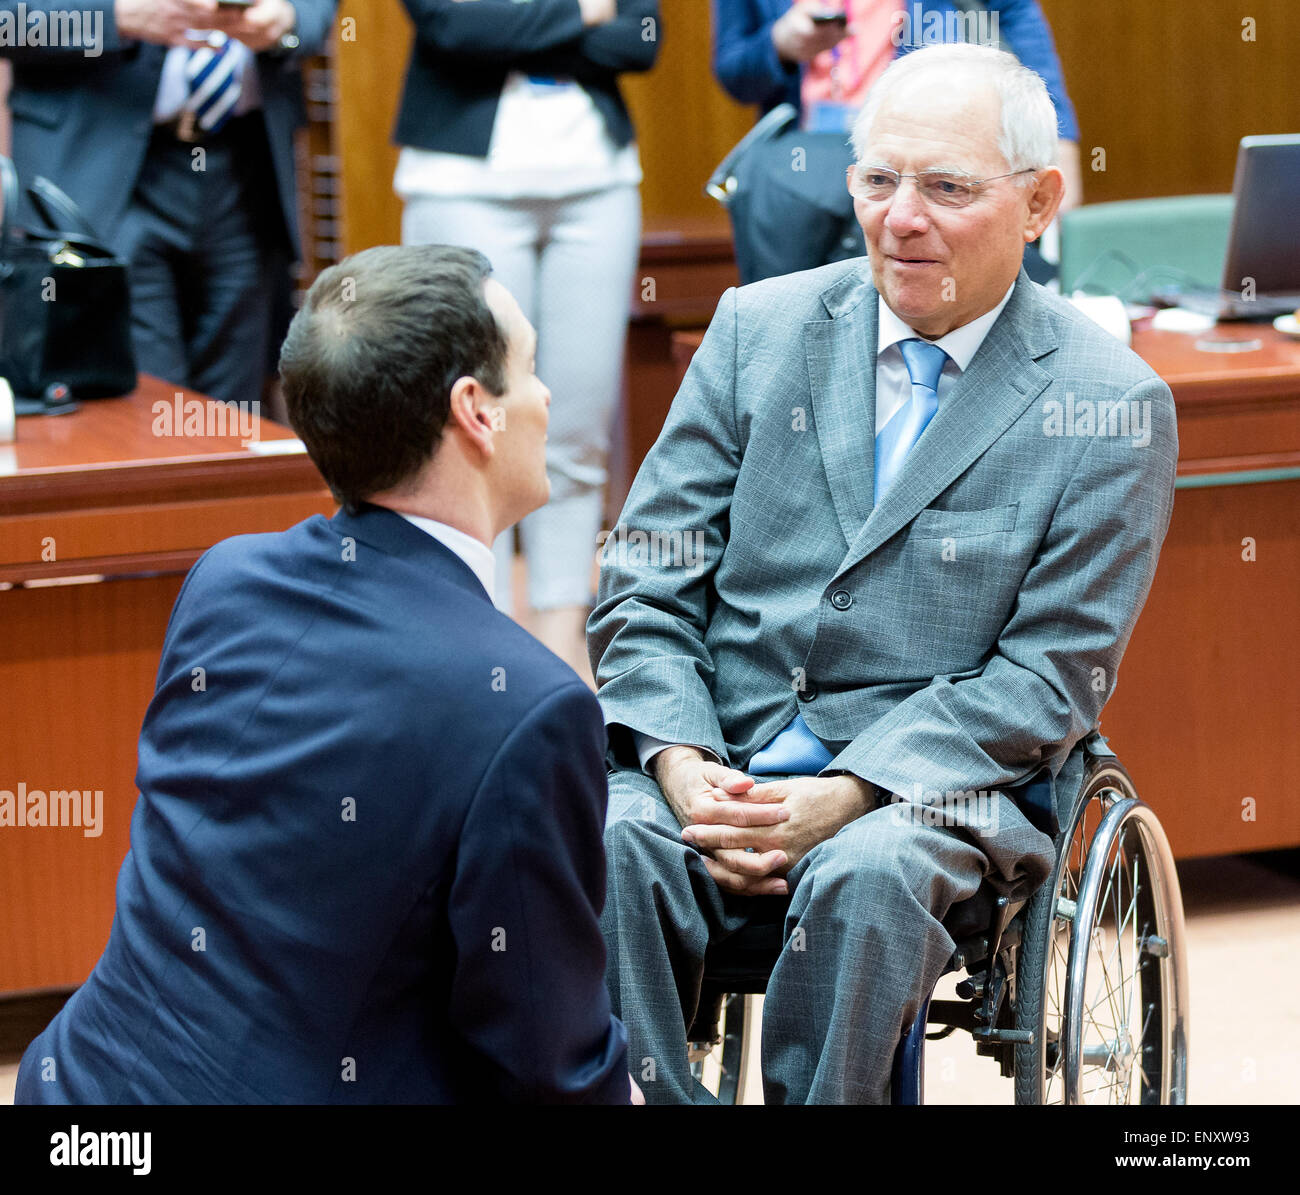 Brussels, Belgium. 12th May, 2015. British Chancellor of the Exchequer George Gideon Oliver Osborne (L) is talking - Stock Image